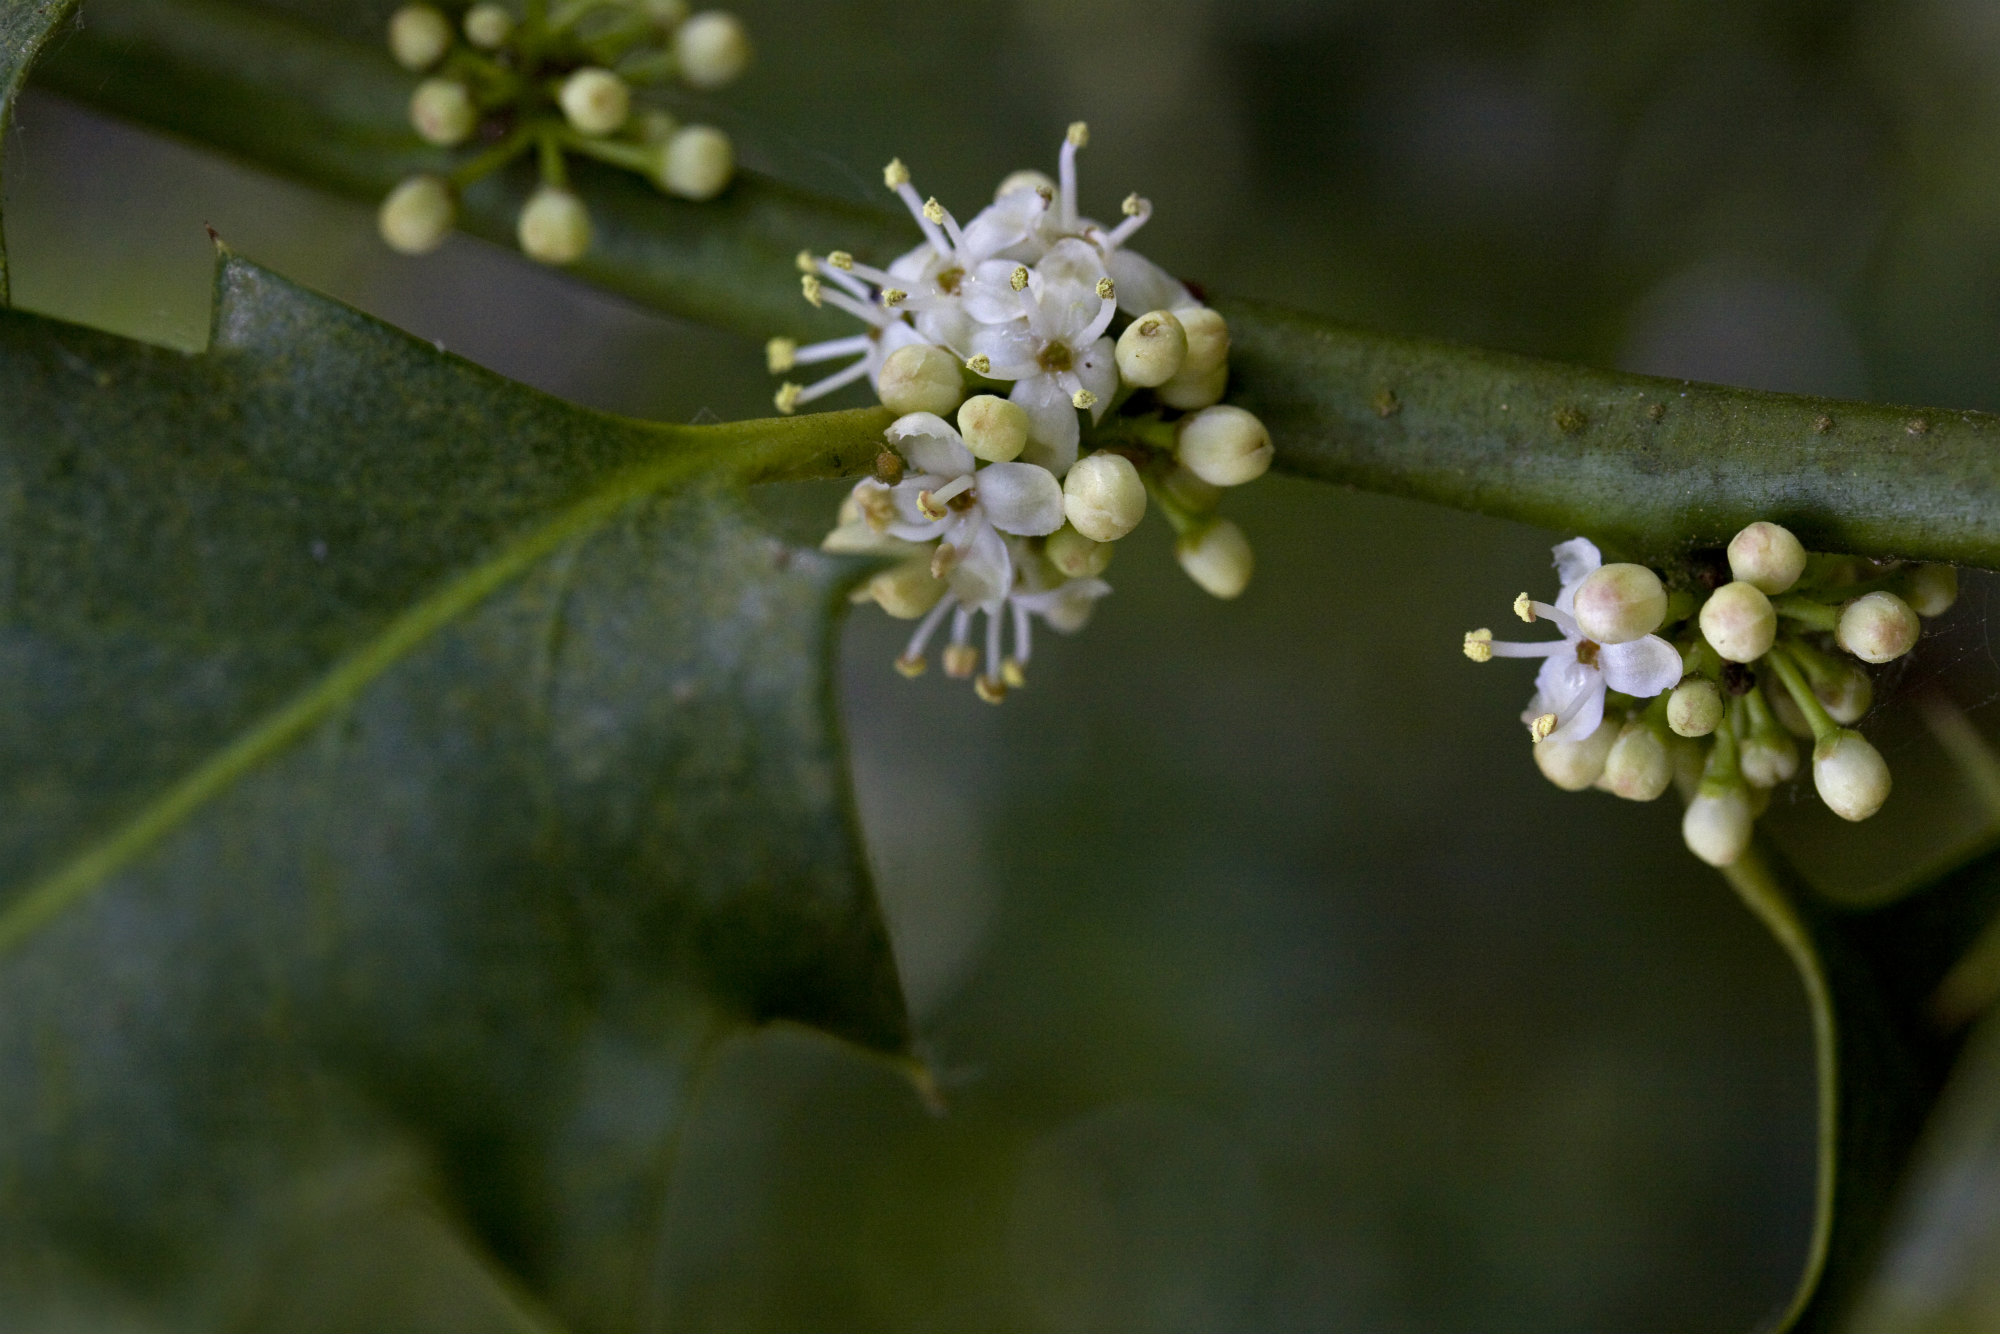 Holly flowers and leaves